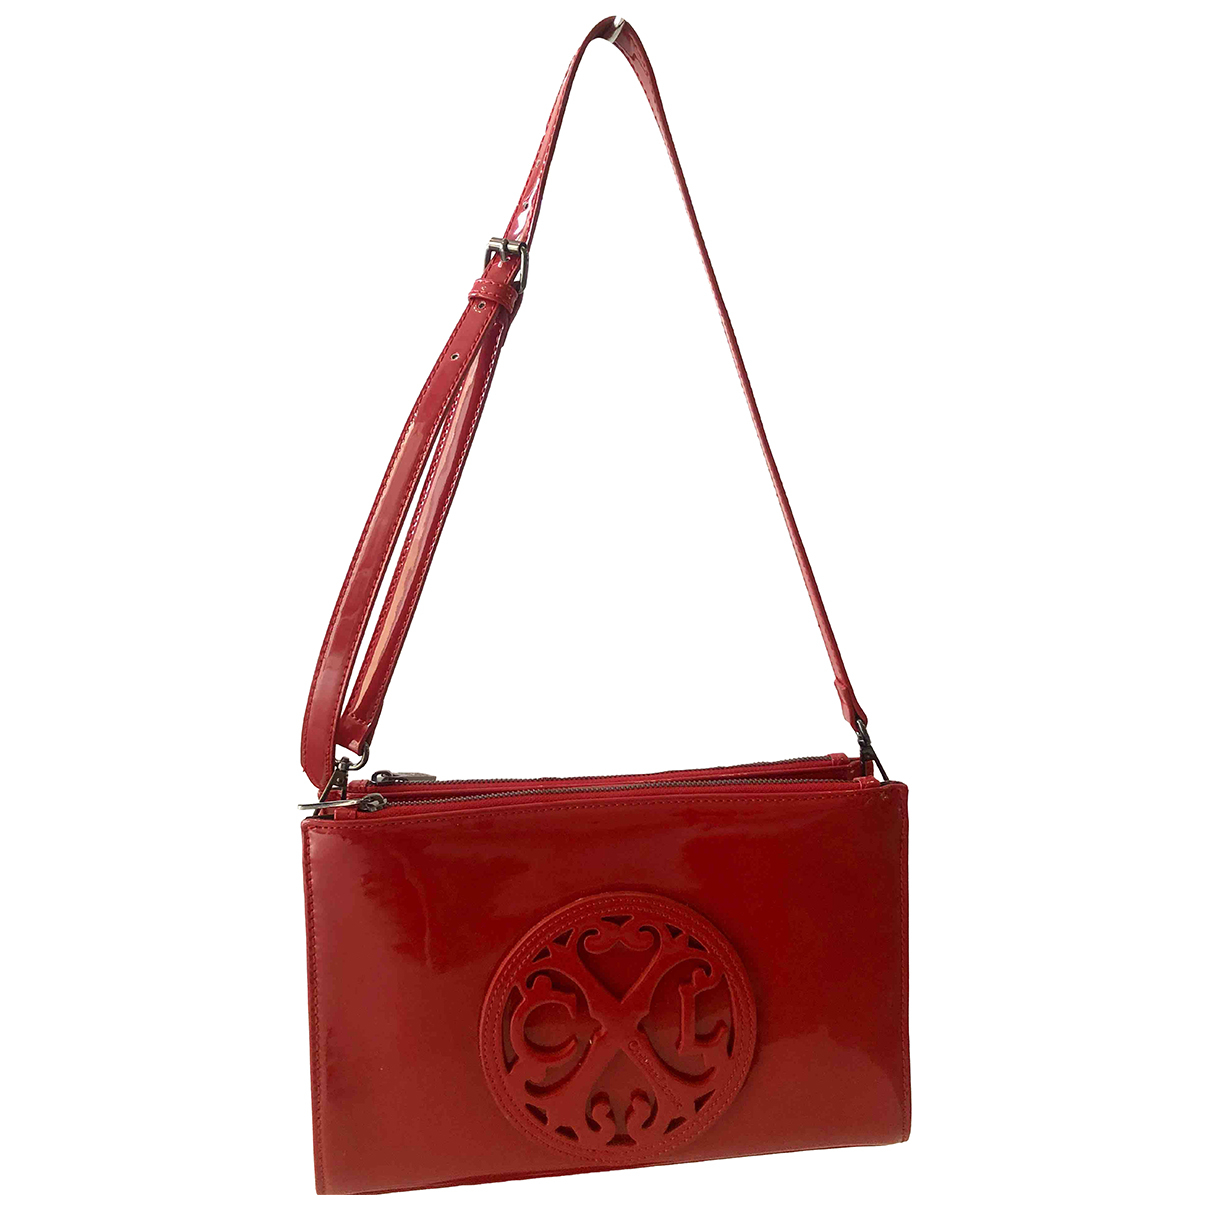 Christian Lacroix \N Red Patent leather handbag for Women \N